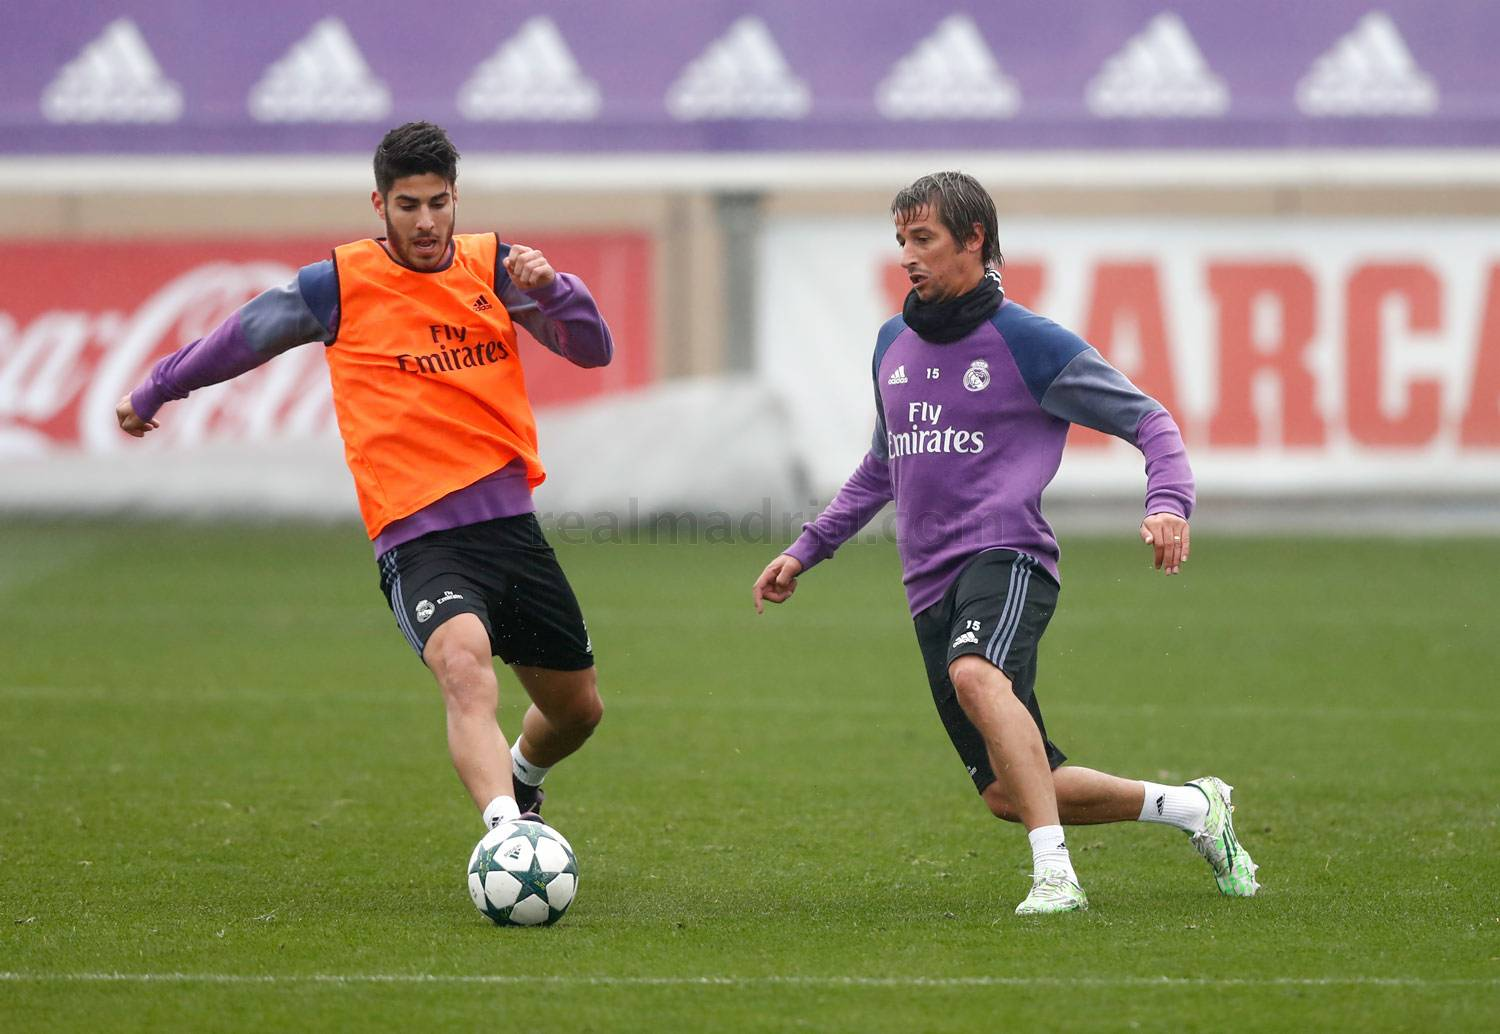 Real Madrid - Entrenamiento del Real Madrid - 20-11-2016